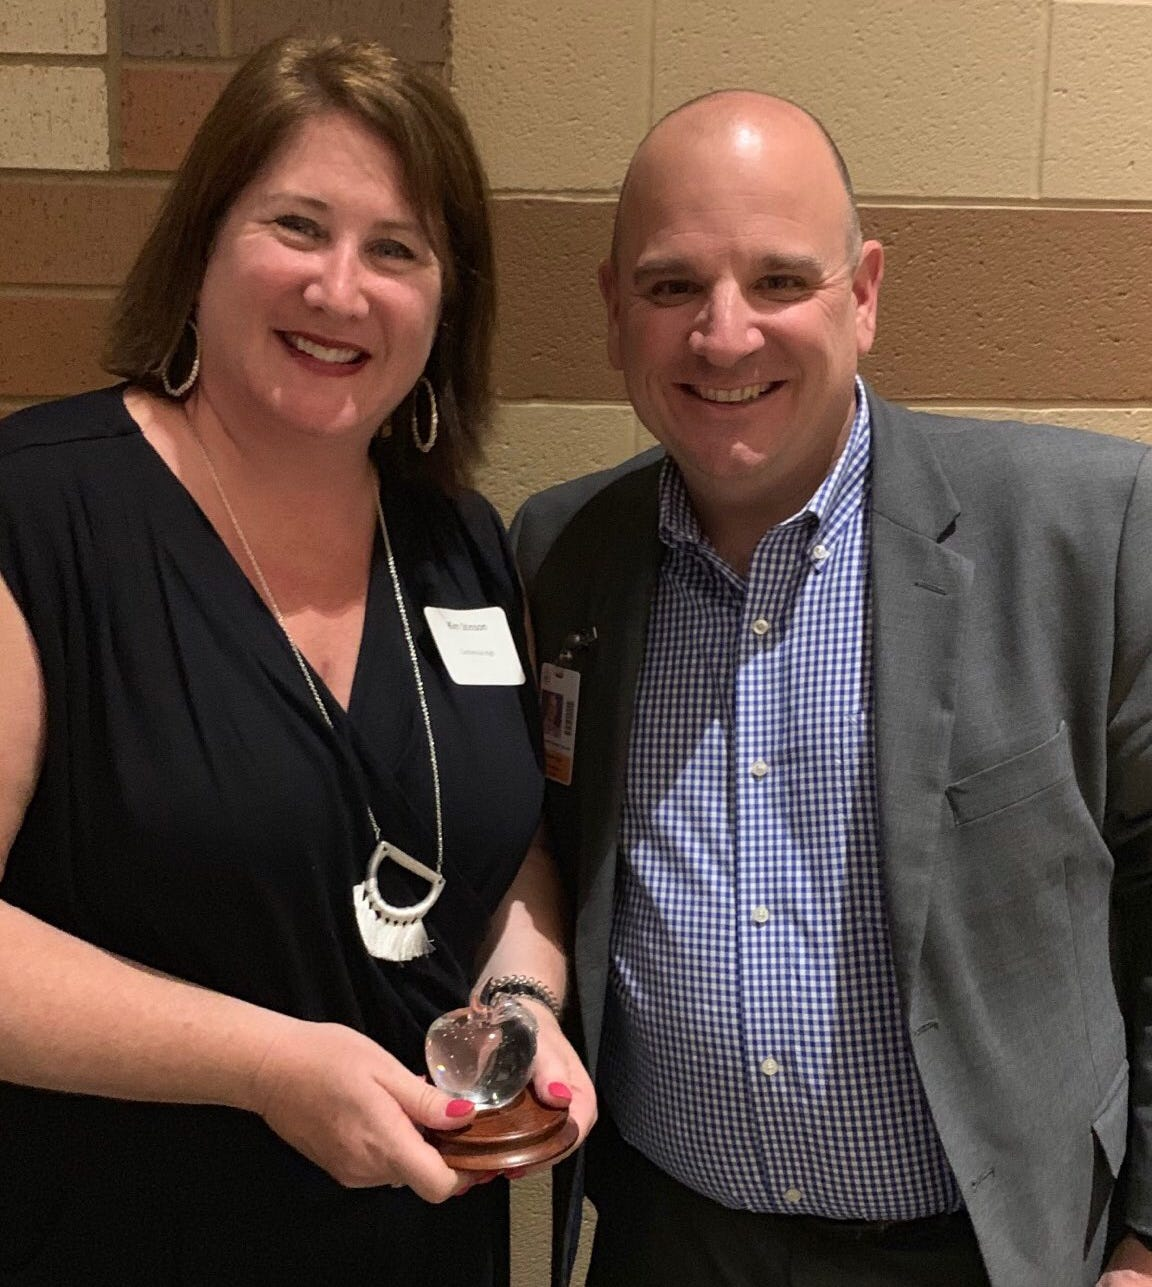 """Kim Stinson stands with Centennial High Principal Chris Hames after been named a WCS """"Shining Apple"""" for her volunteer work at CHS."""